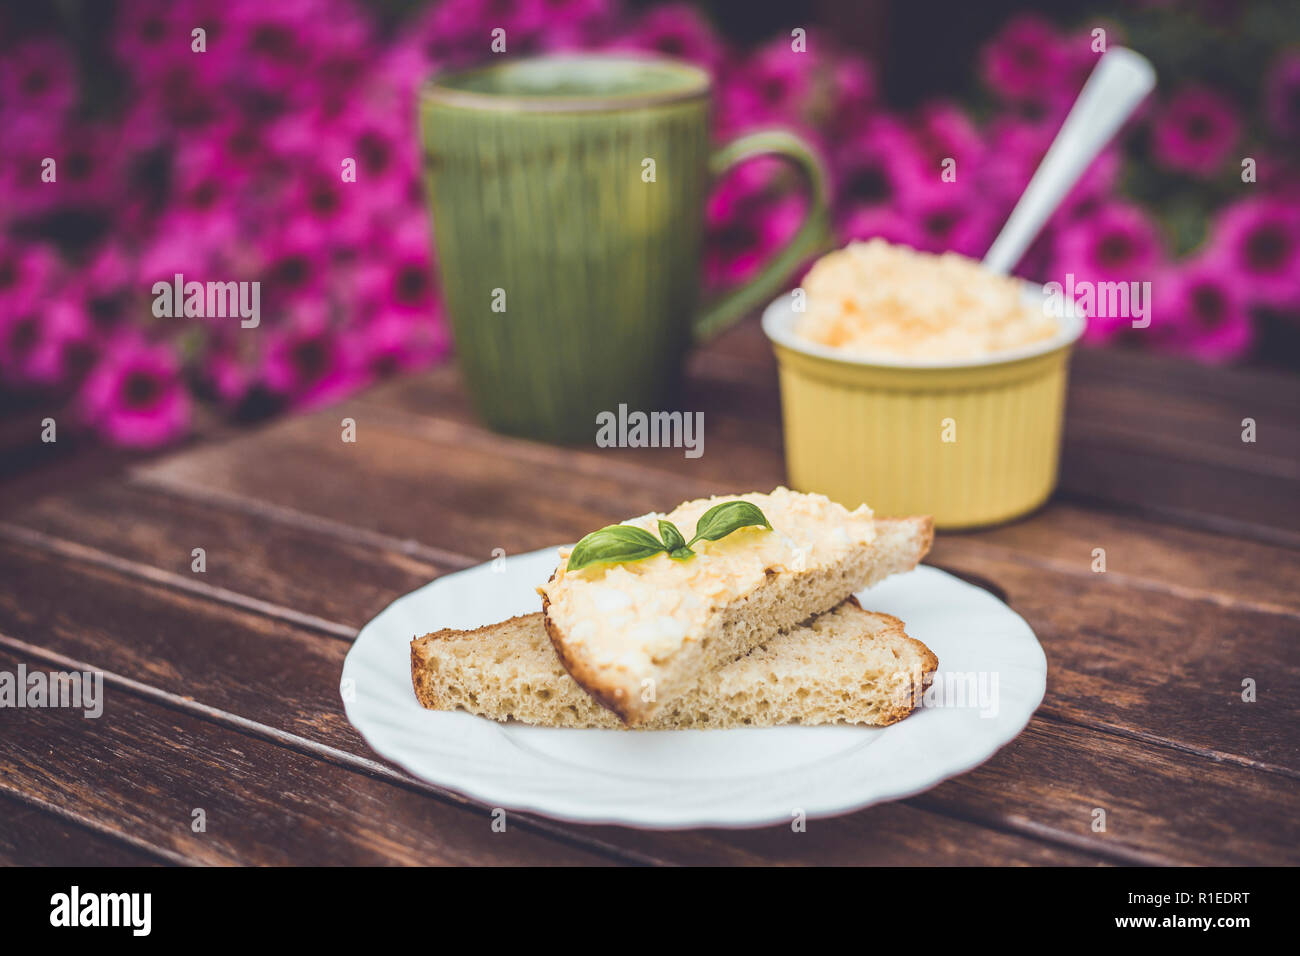 Yellow delicious egg and mayonnaise paste on whole wheat bread, breakfast snack recipe, pink flowers on the background, wooden base. - Stock Image